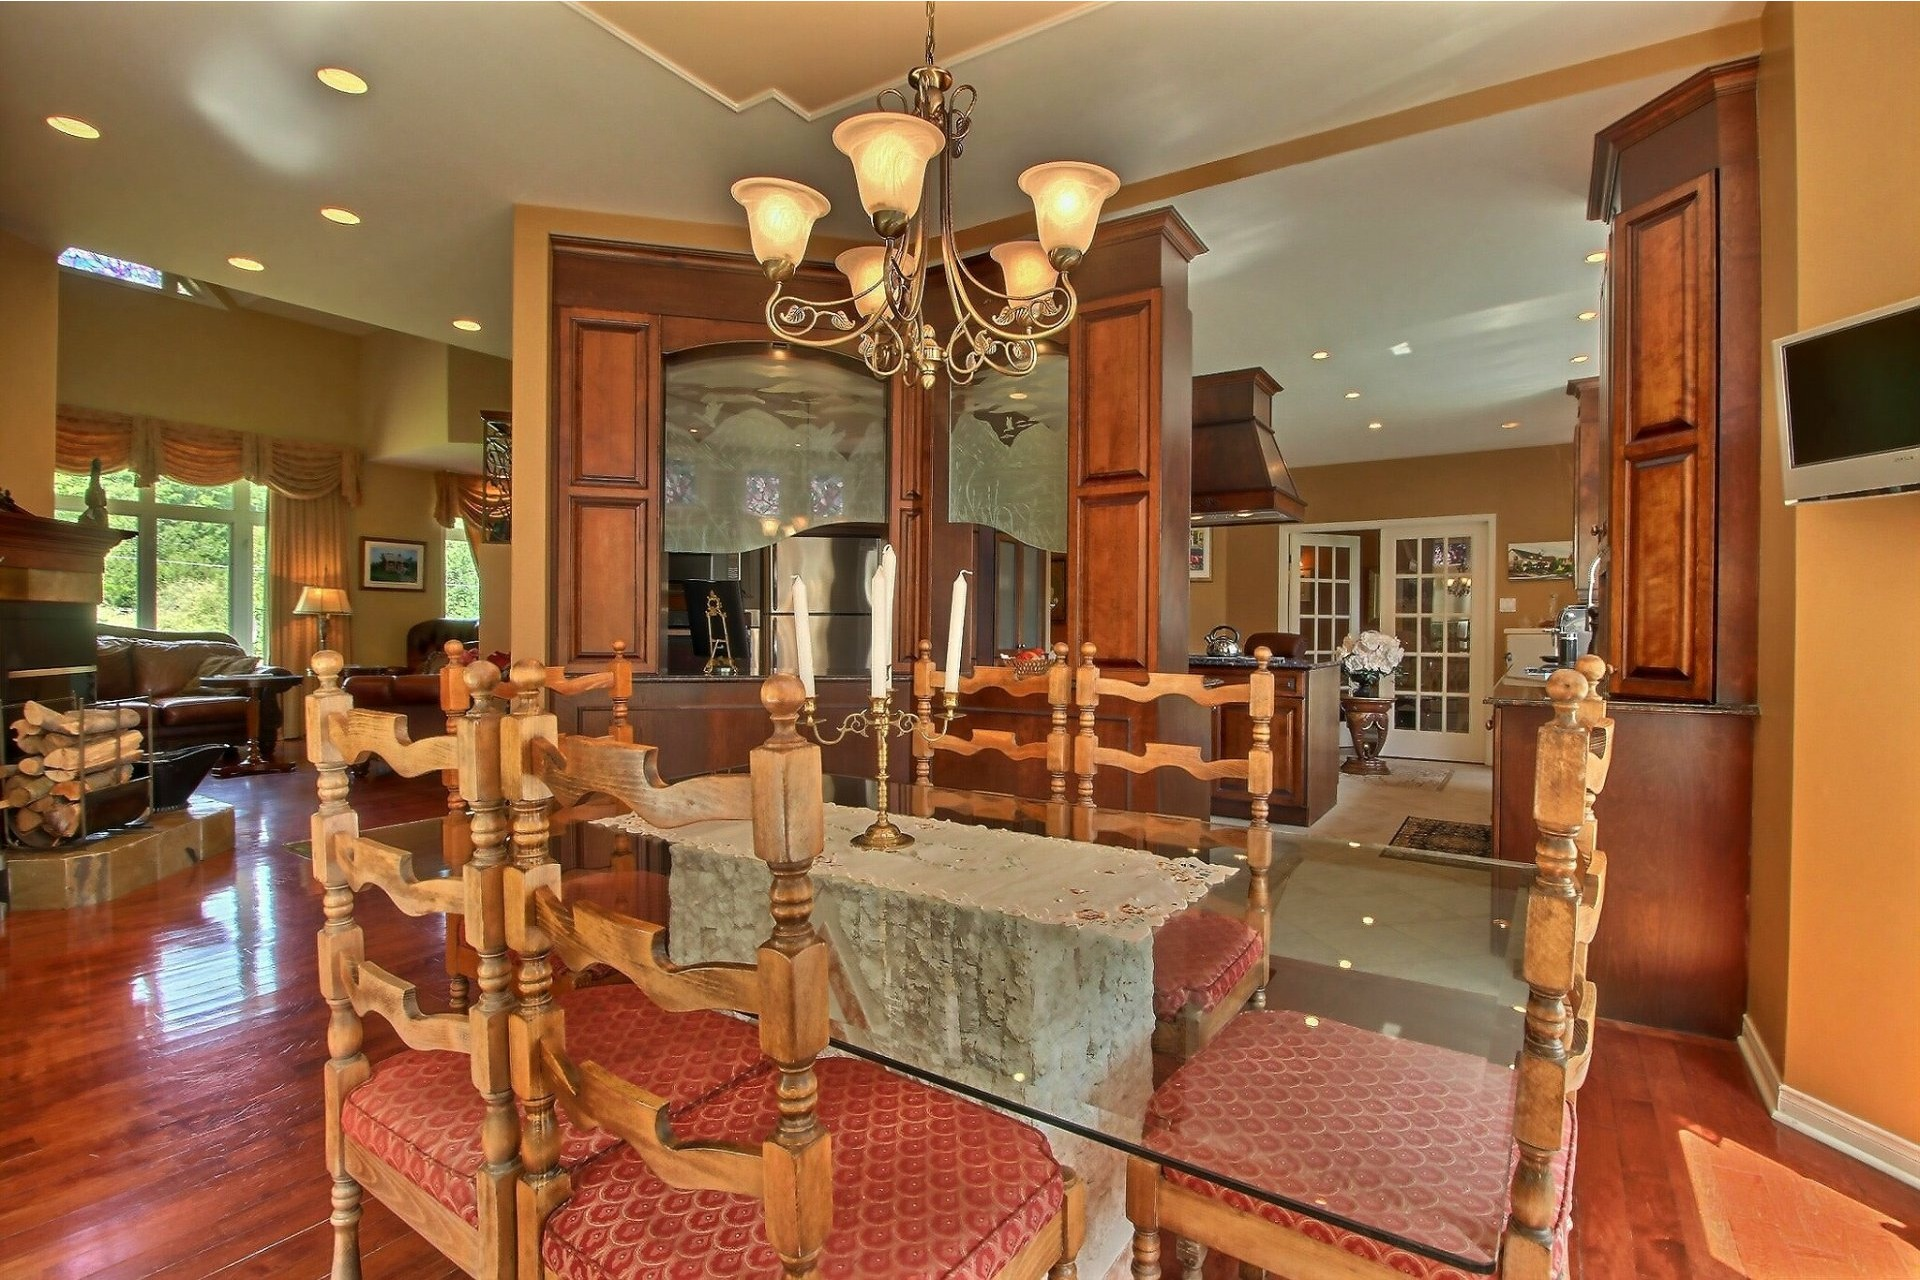 image 8 - House For sale Rawdon - 16 rooms